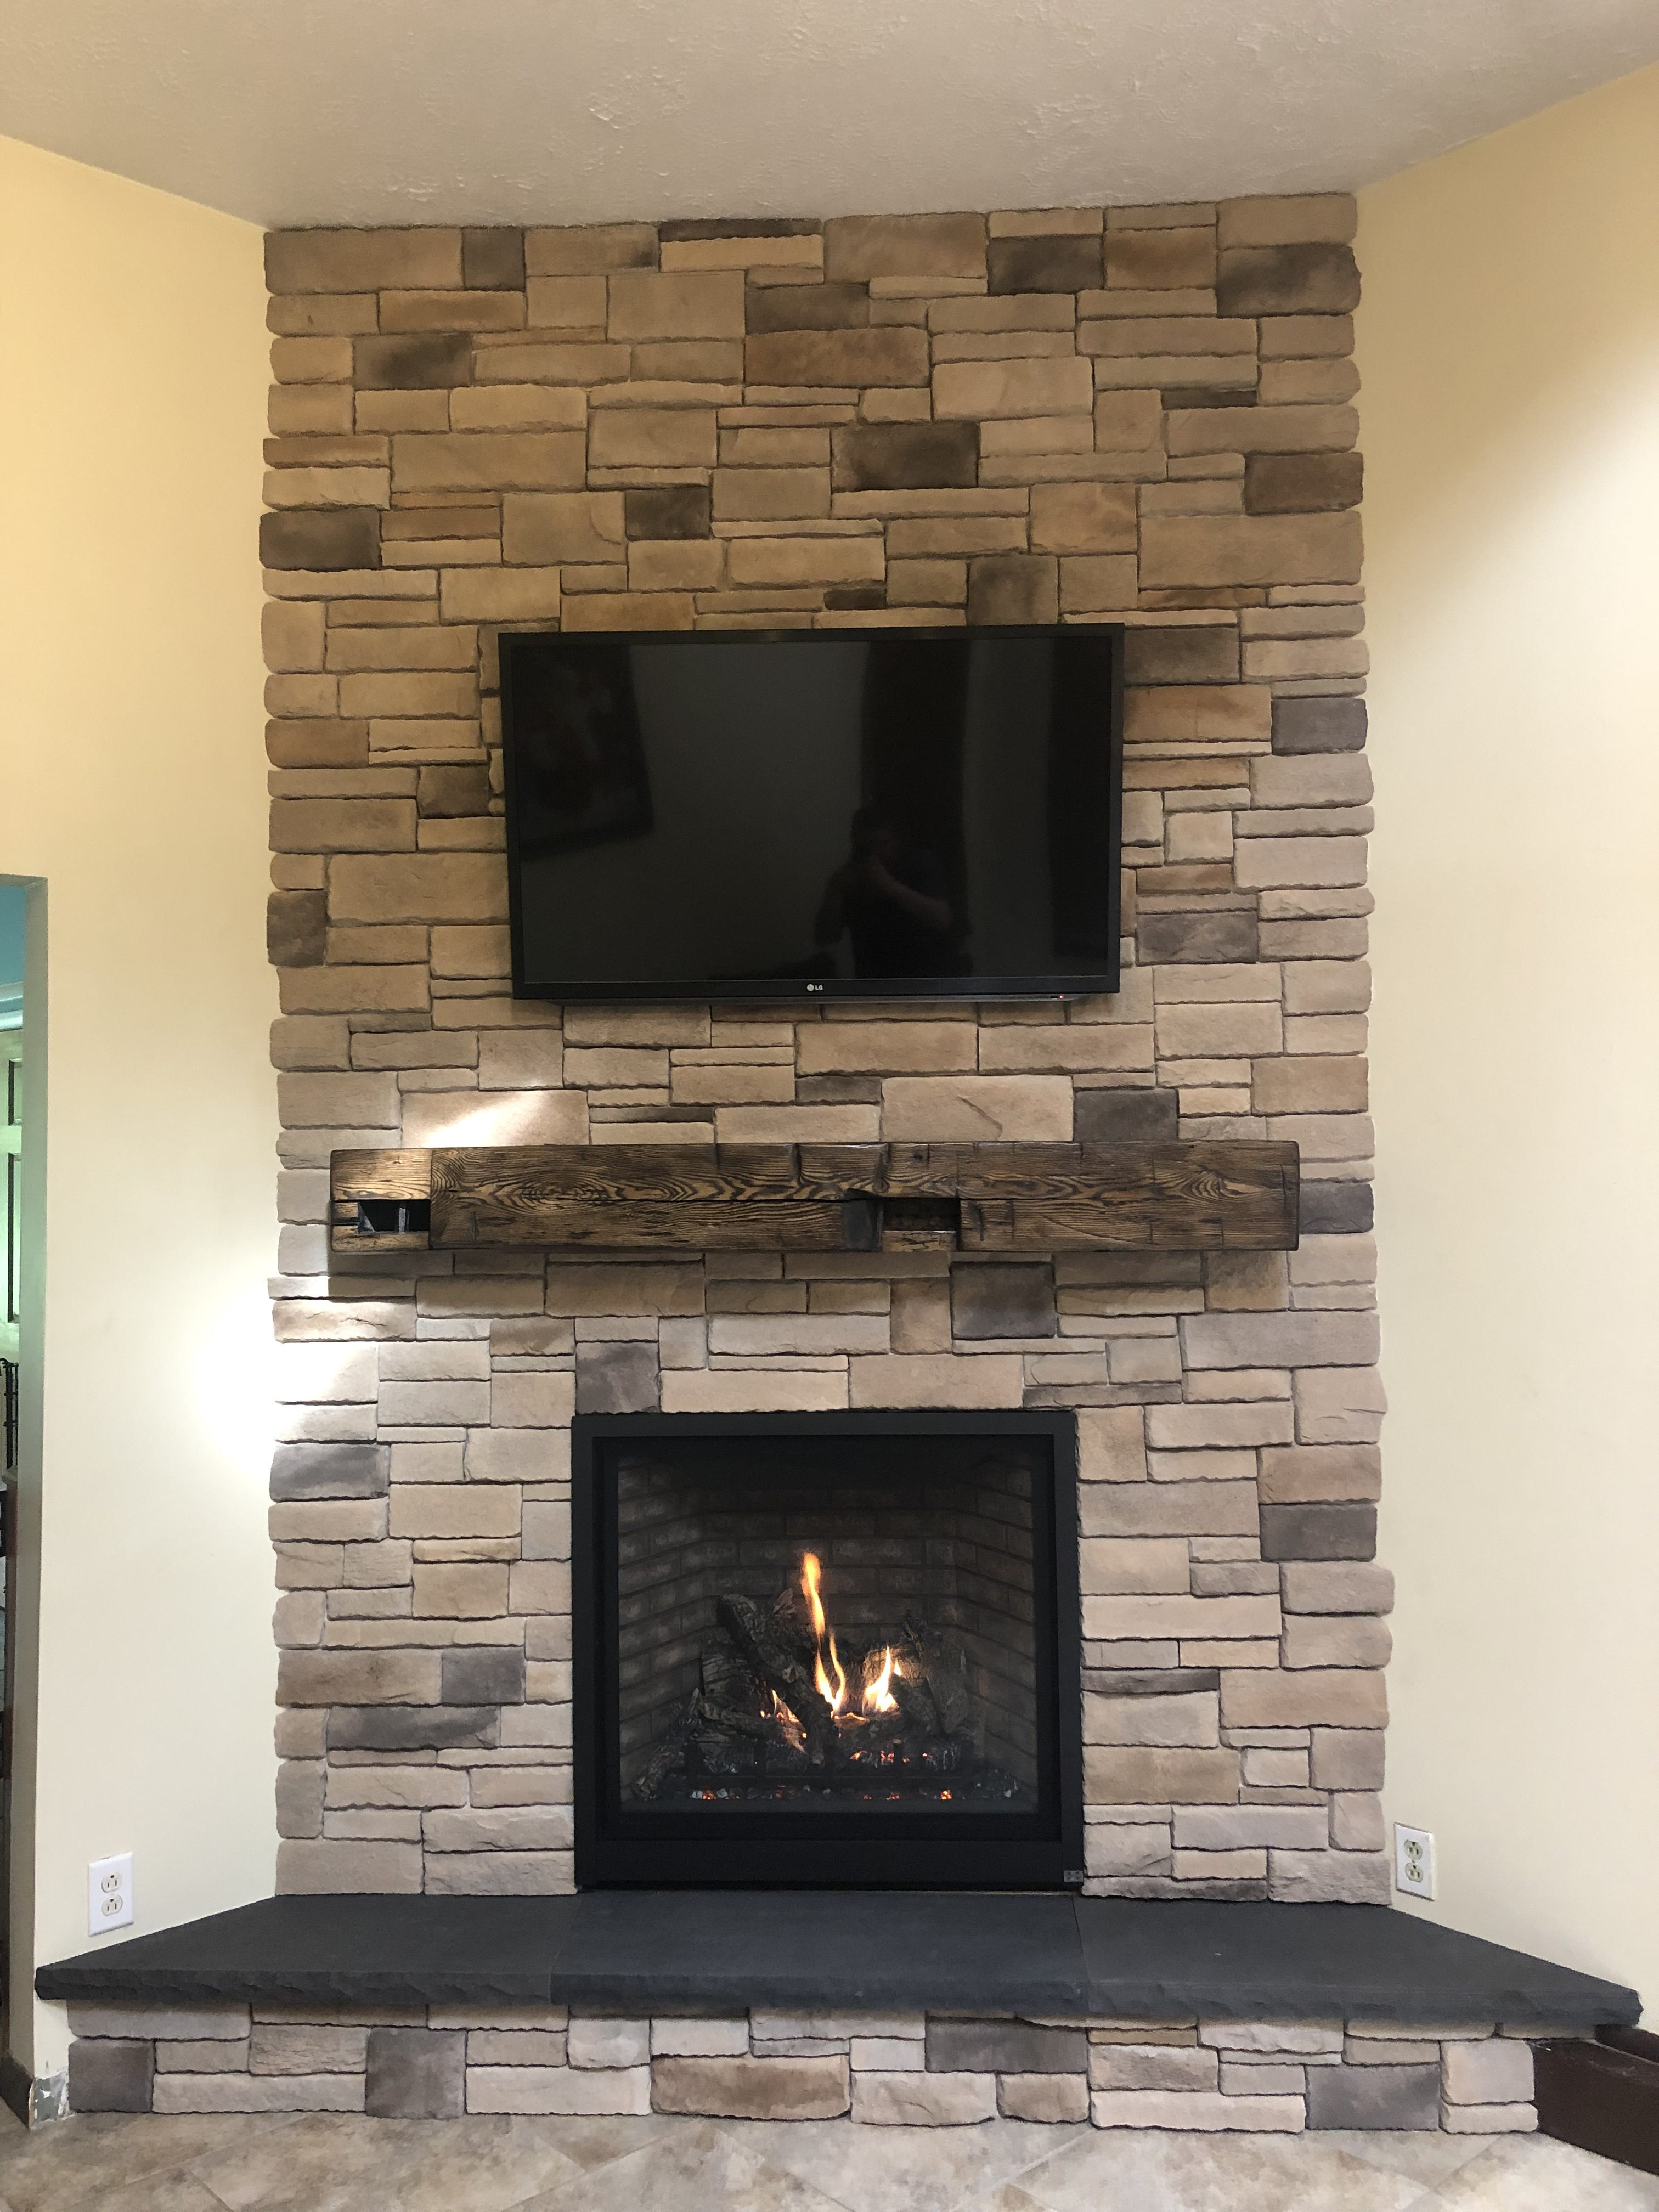 Image of a Probuilder 36CF Gas fireplace by Travis Industries featuring traditional brick interior.